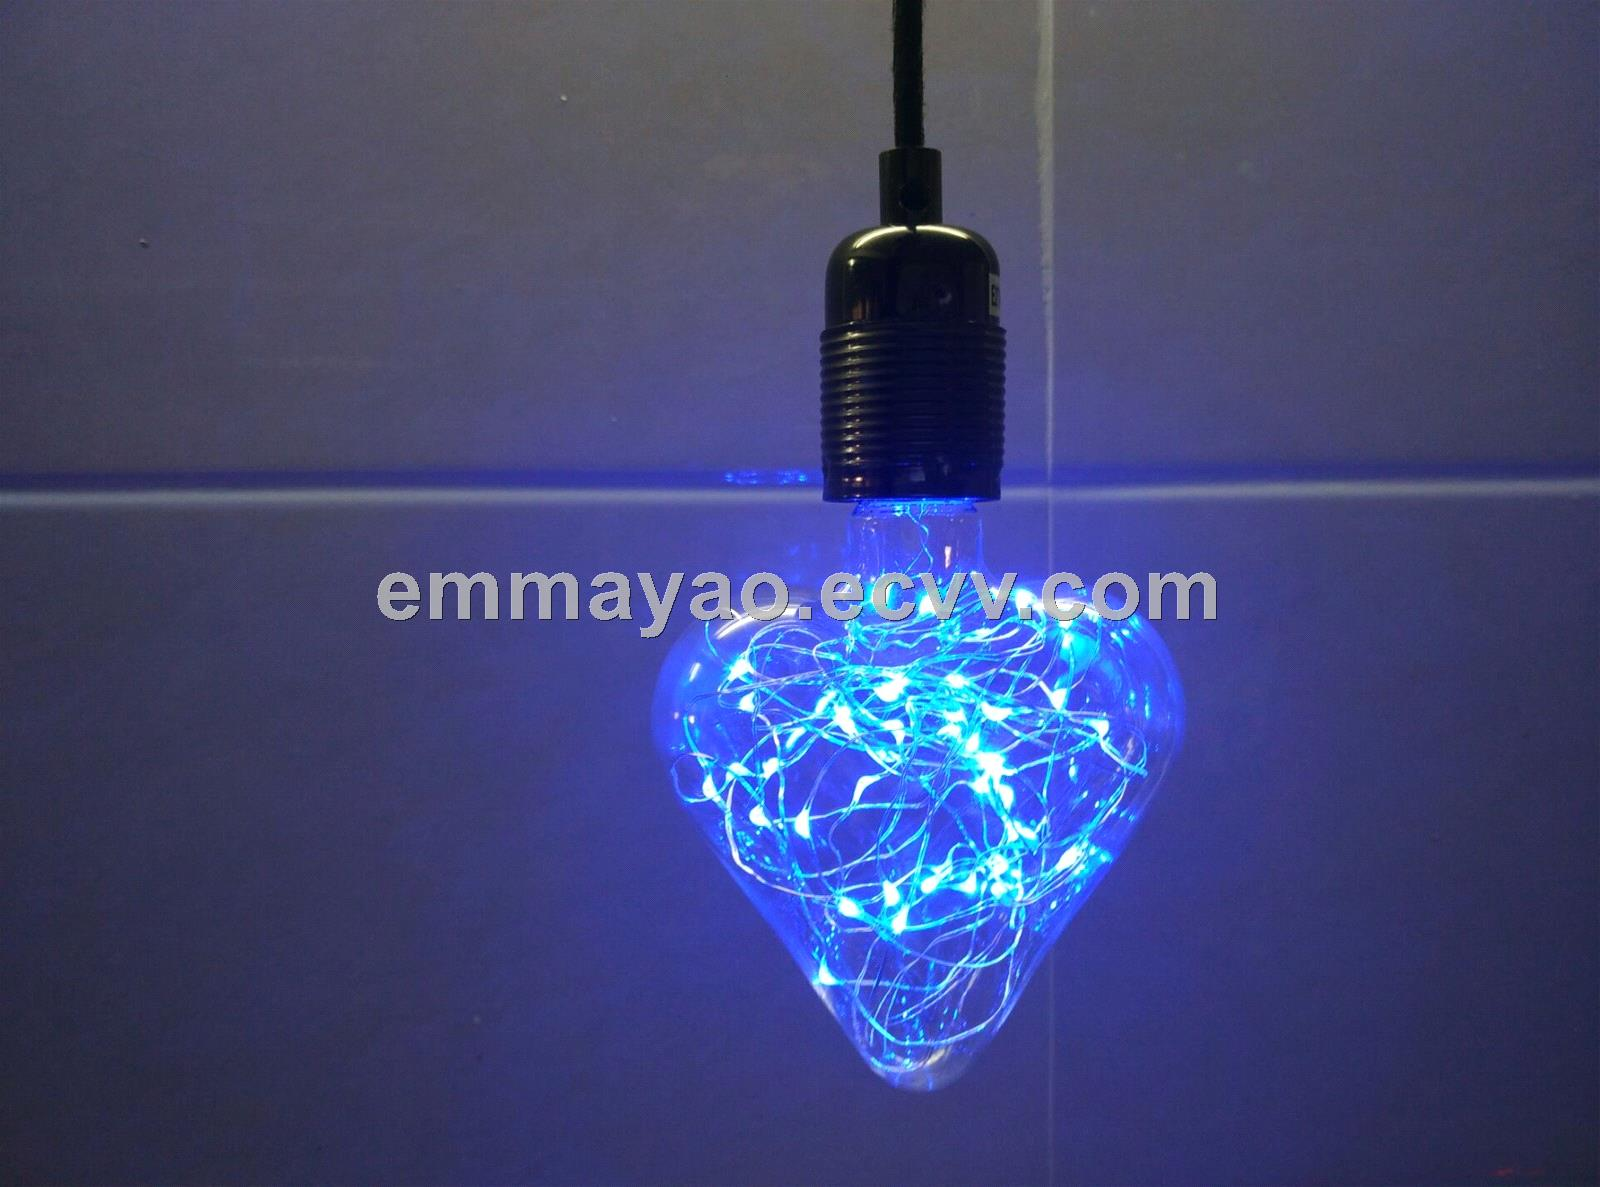 Copper led light bulb decorated led bulb Christmas led bulb